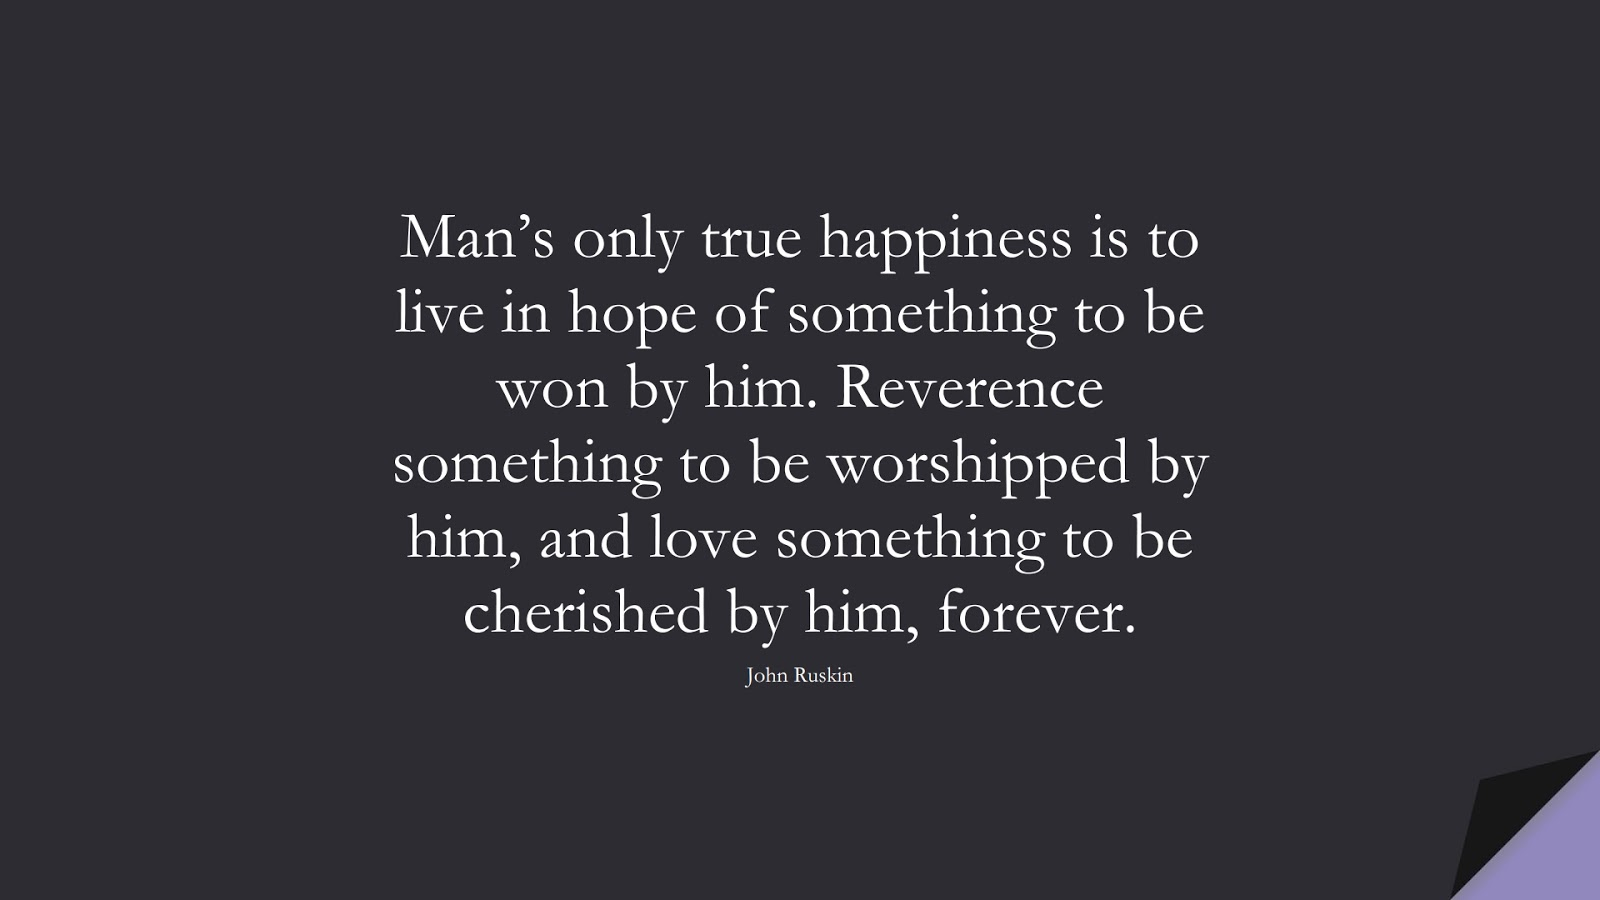 Man's only true happiness is to live in hope of something to be won by him. Reverence something to be worshipped by him, and love something to be cherished by him, forever. (John Ruskin);  #HappinessQuotes